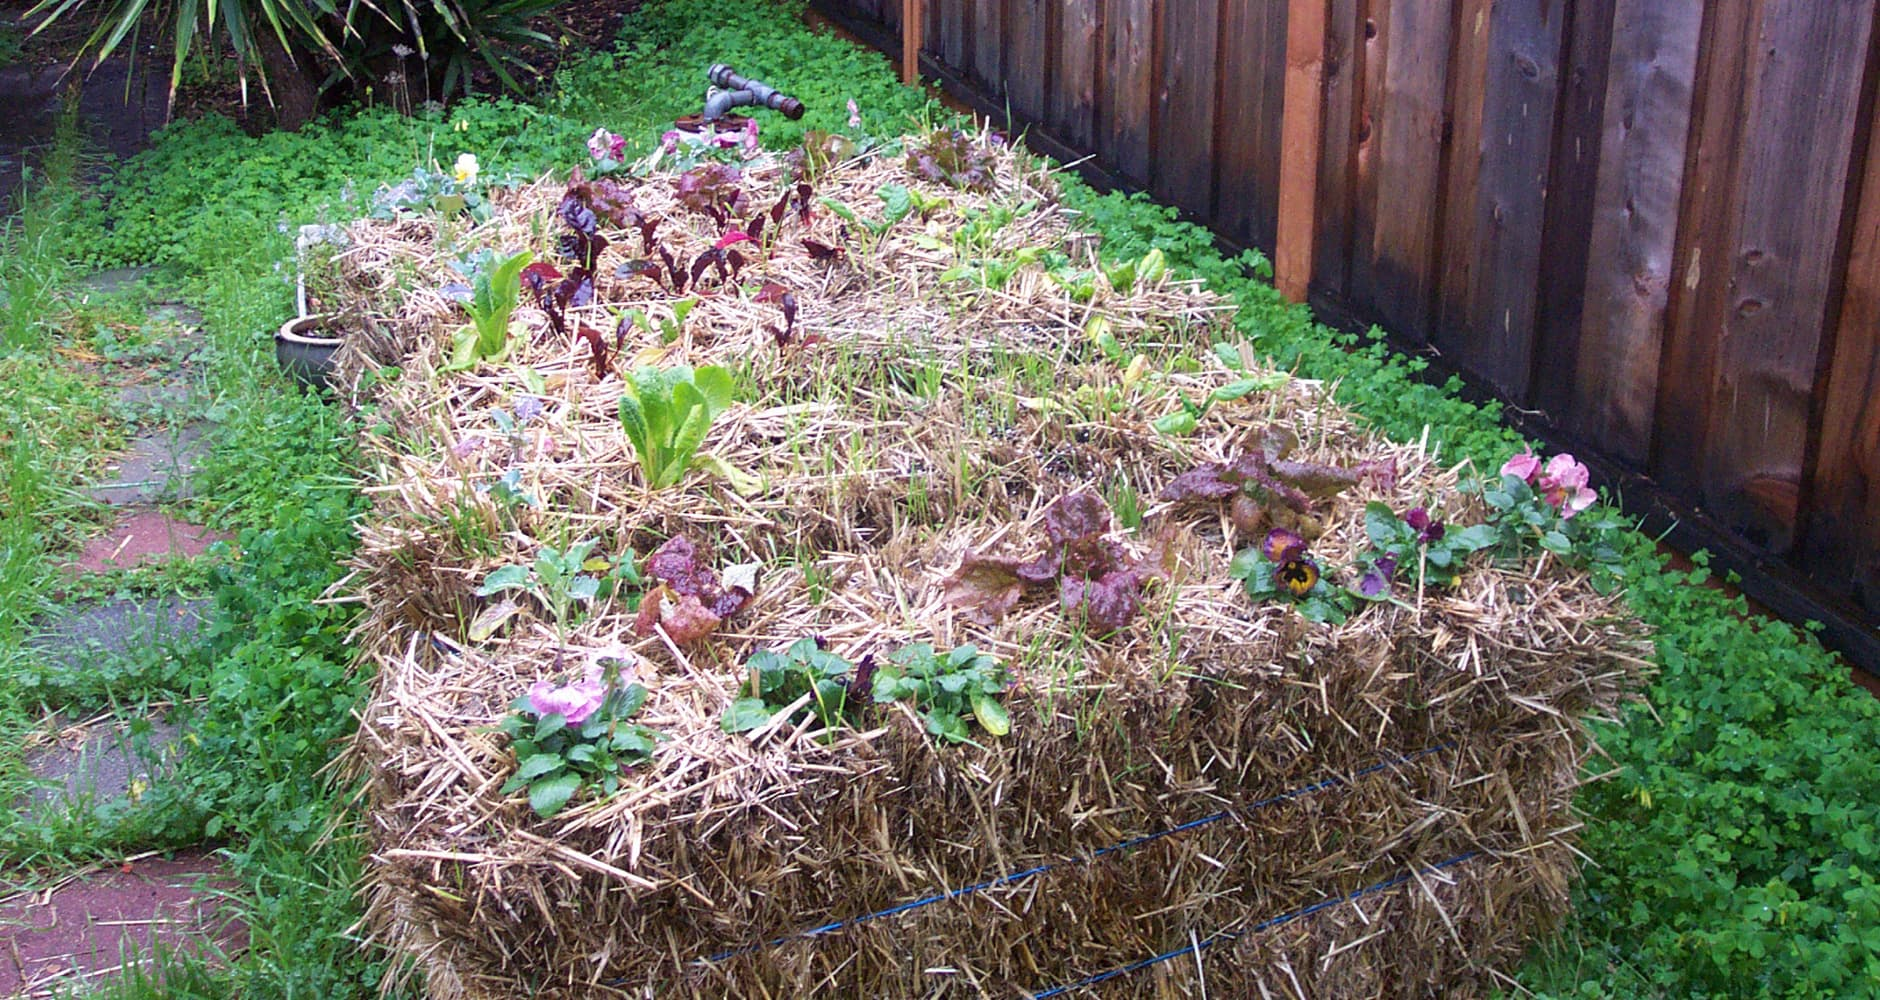 Gardening Made Easy With Straw Bales!image preview